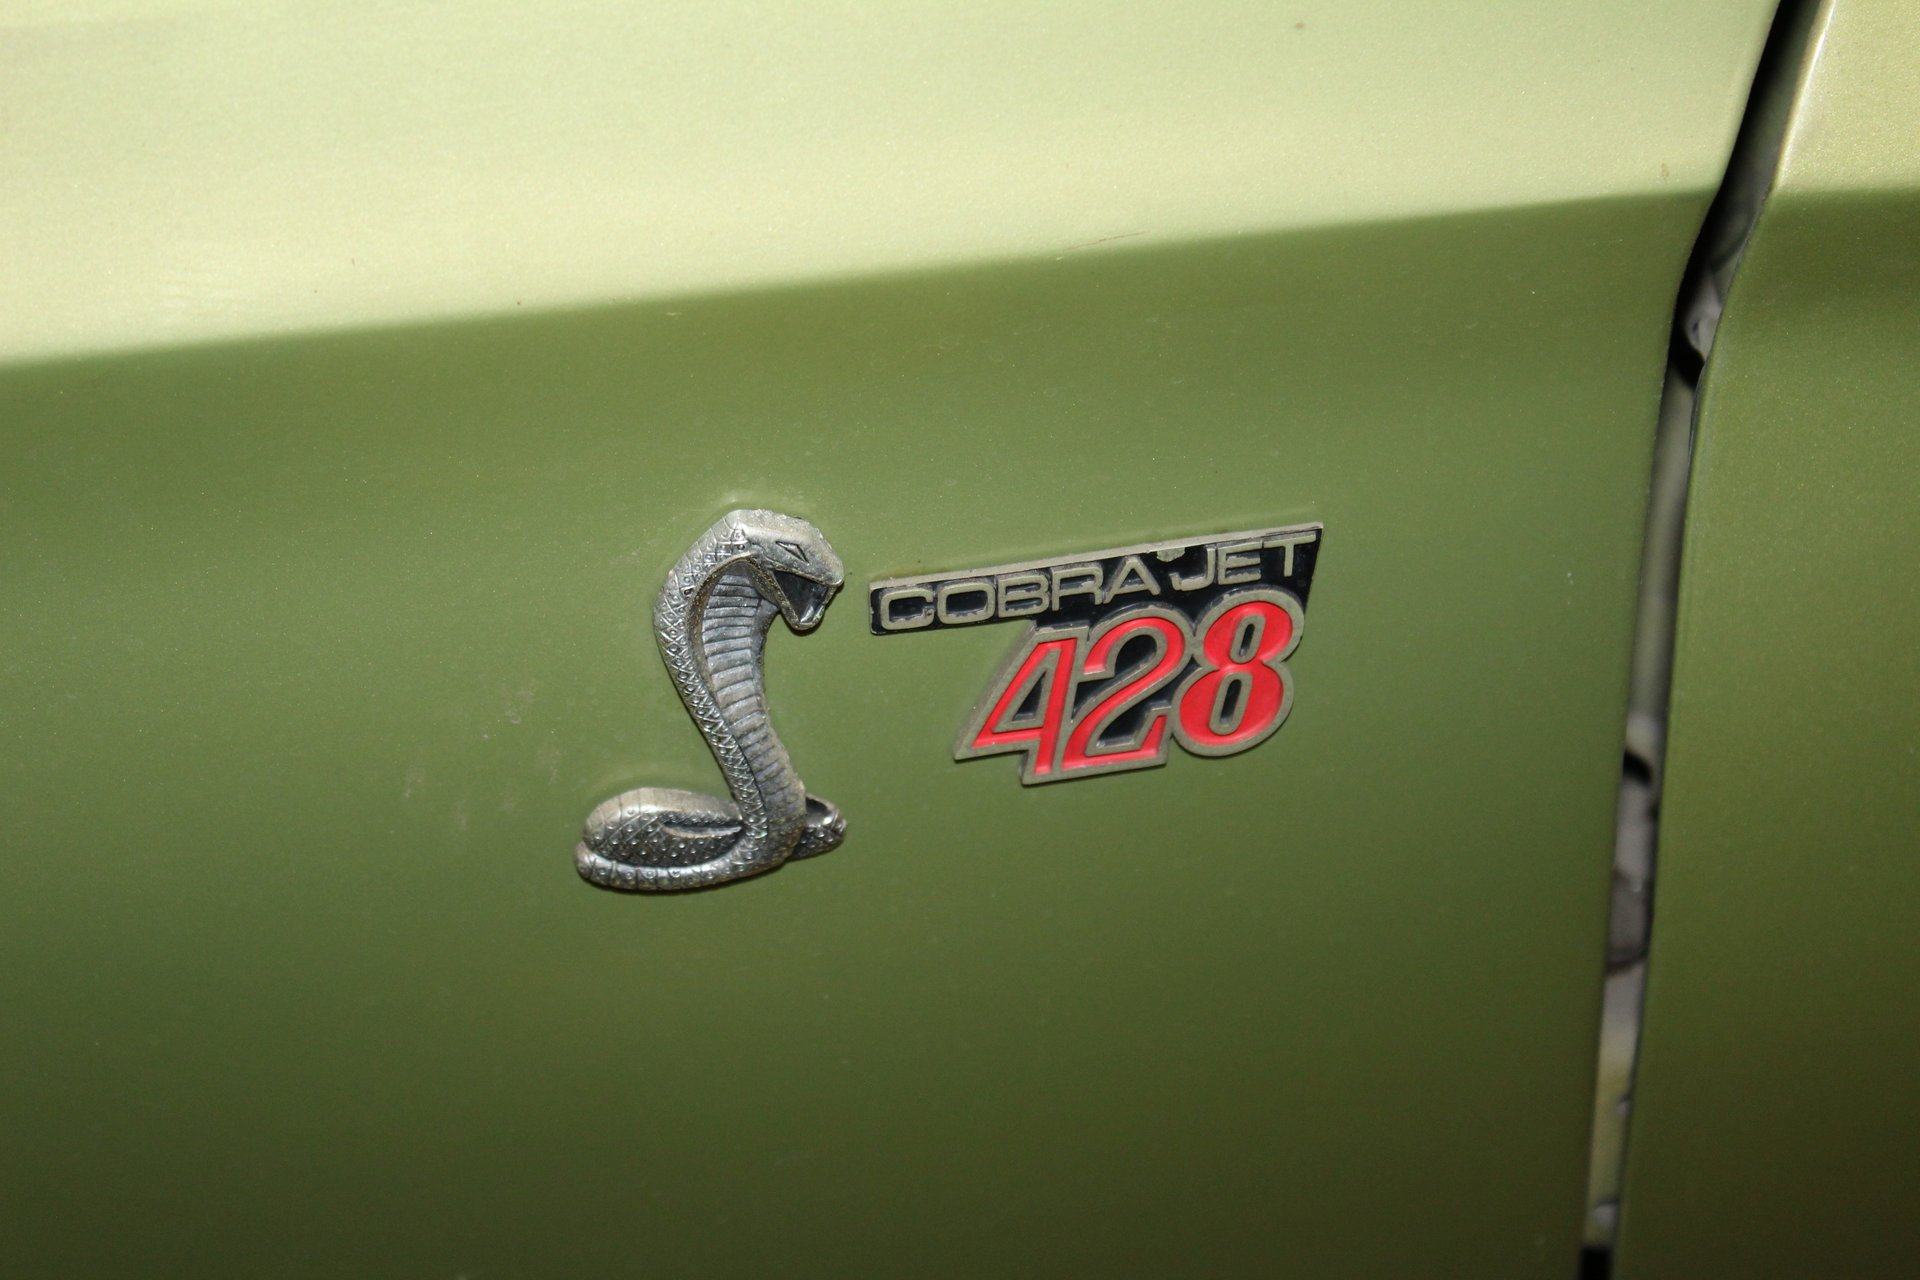 1968 Shelby GT500KR badge